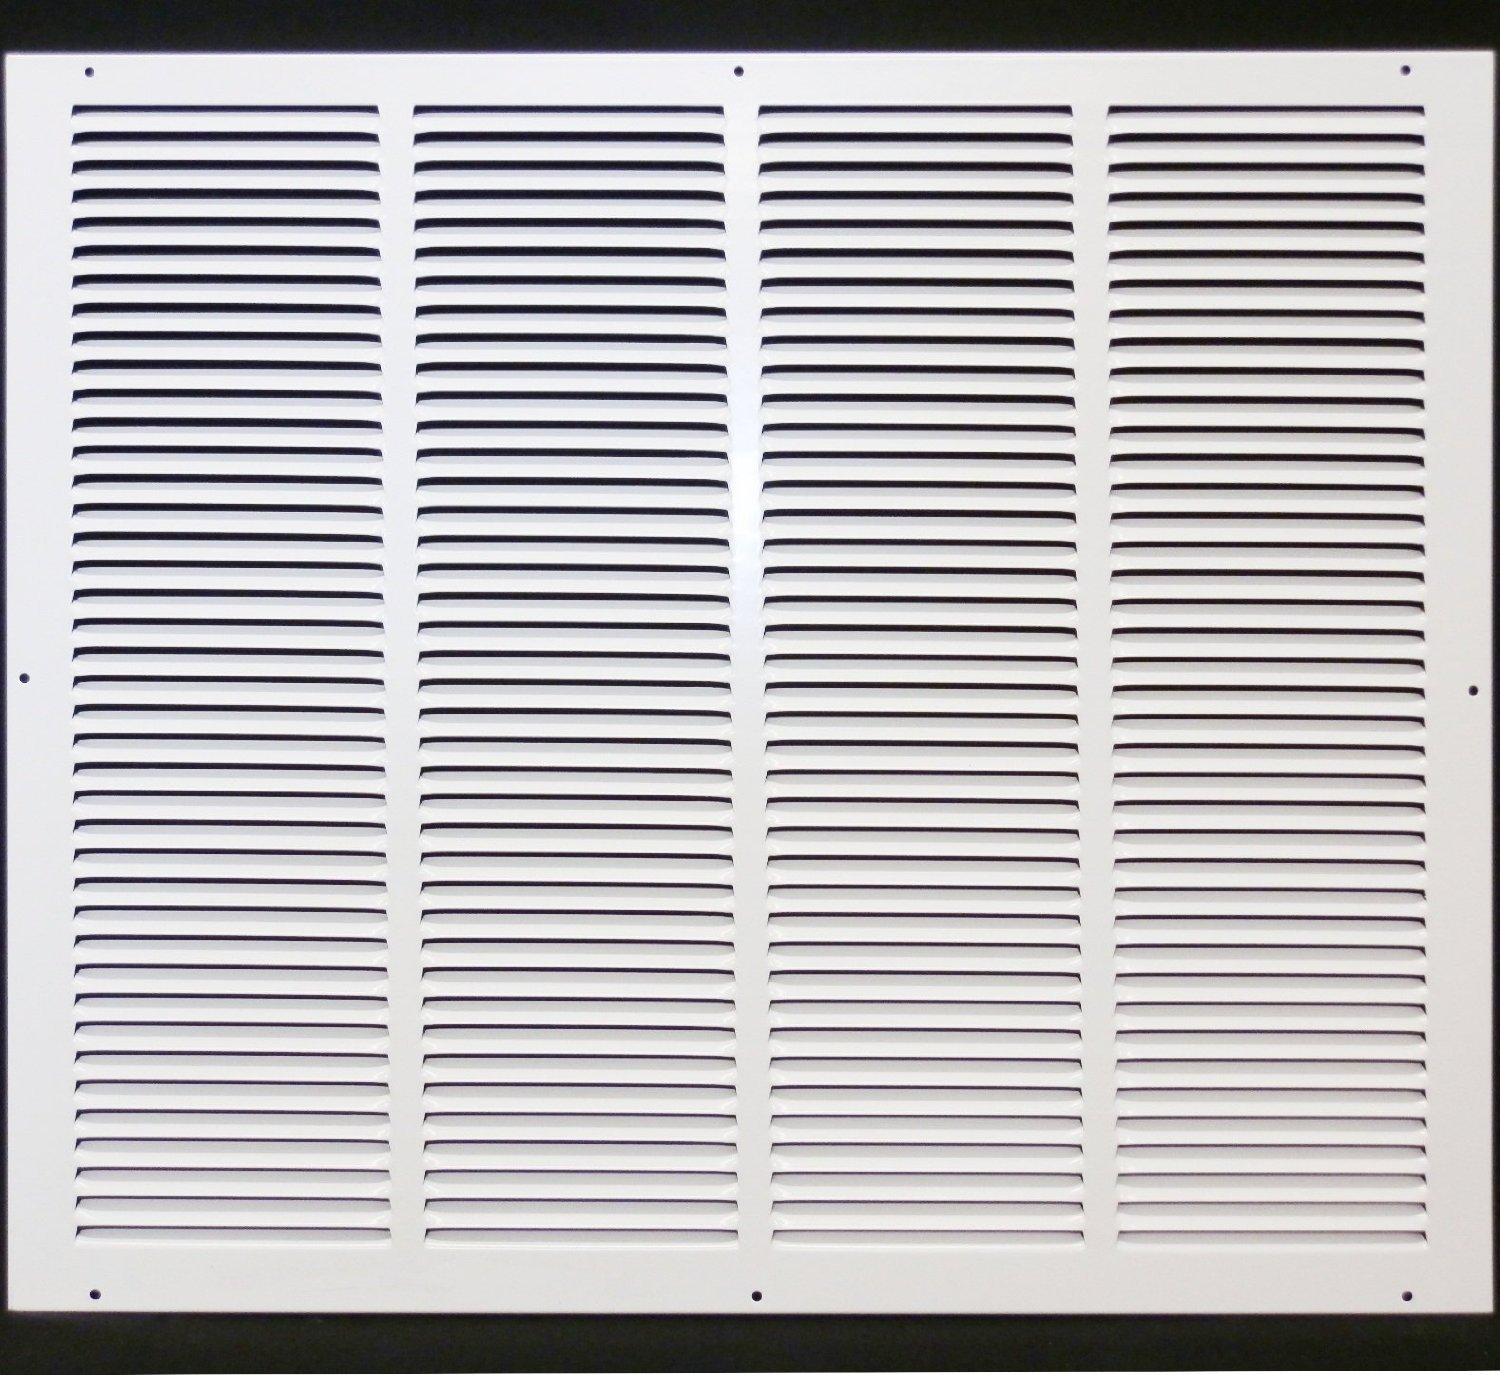 24''w X 20''h Steel Return Air Grilles - Sidewall and Cieling - HVAC DUCT COVER - White [Outer Dimensions: 25.75''w X 21.75''h]